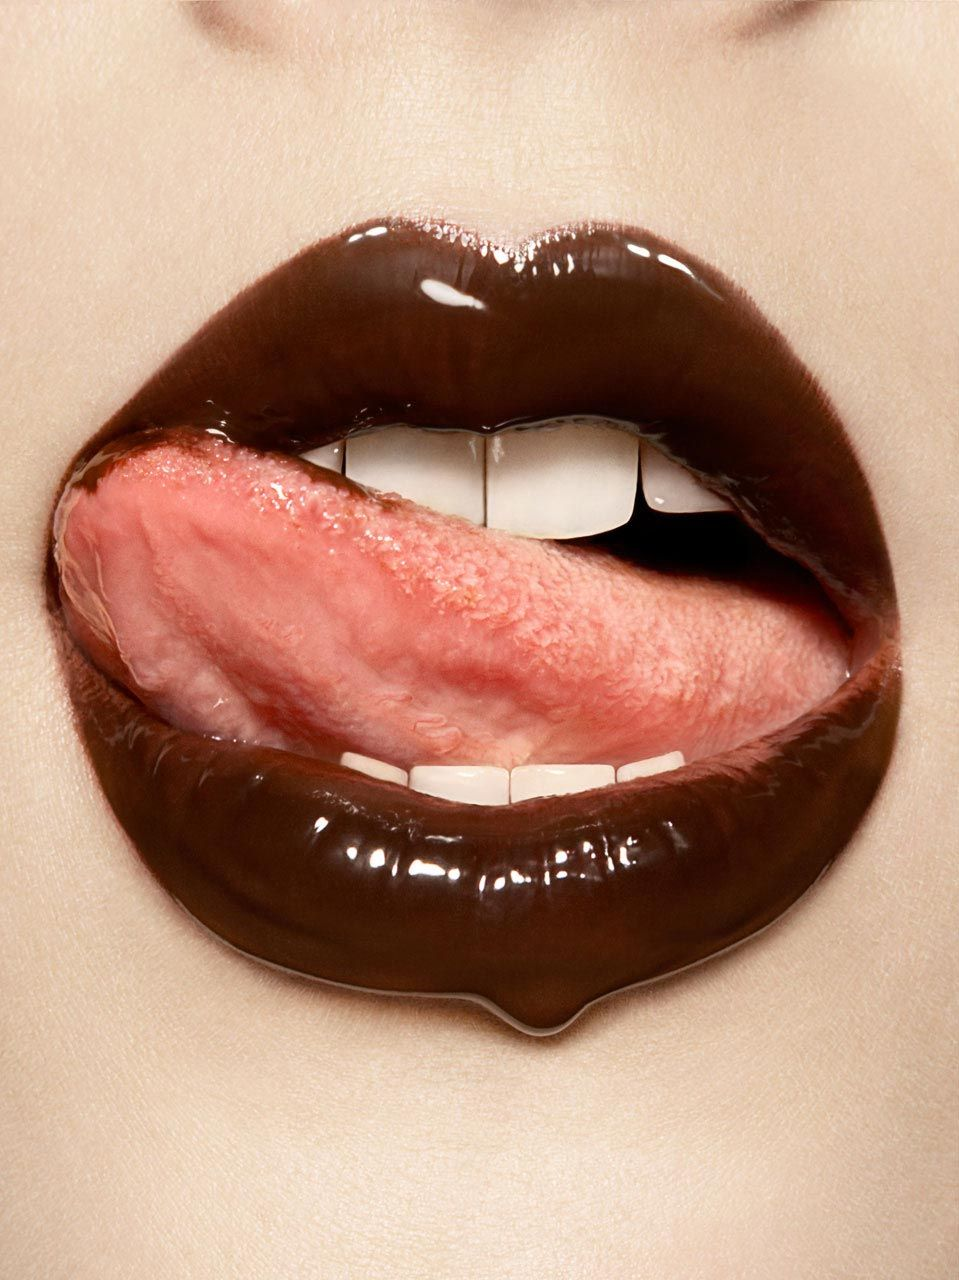 Seb Winter Photography | Lips | Pinterest | Winter Photography Lips And Chocolate